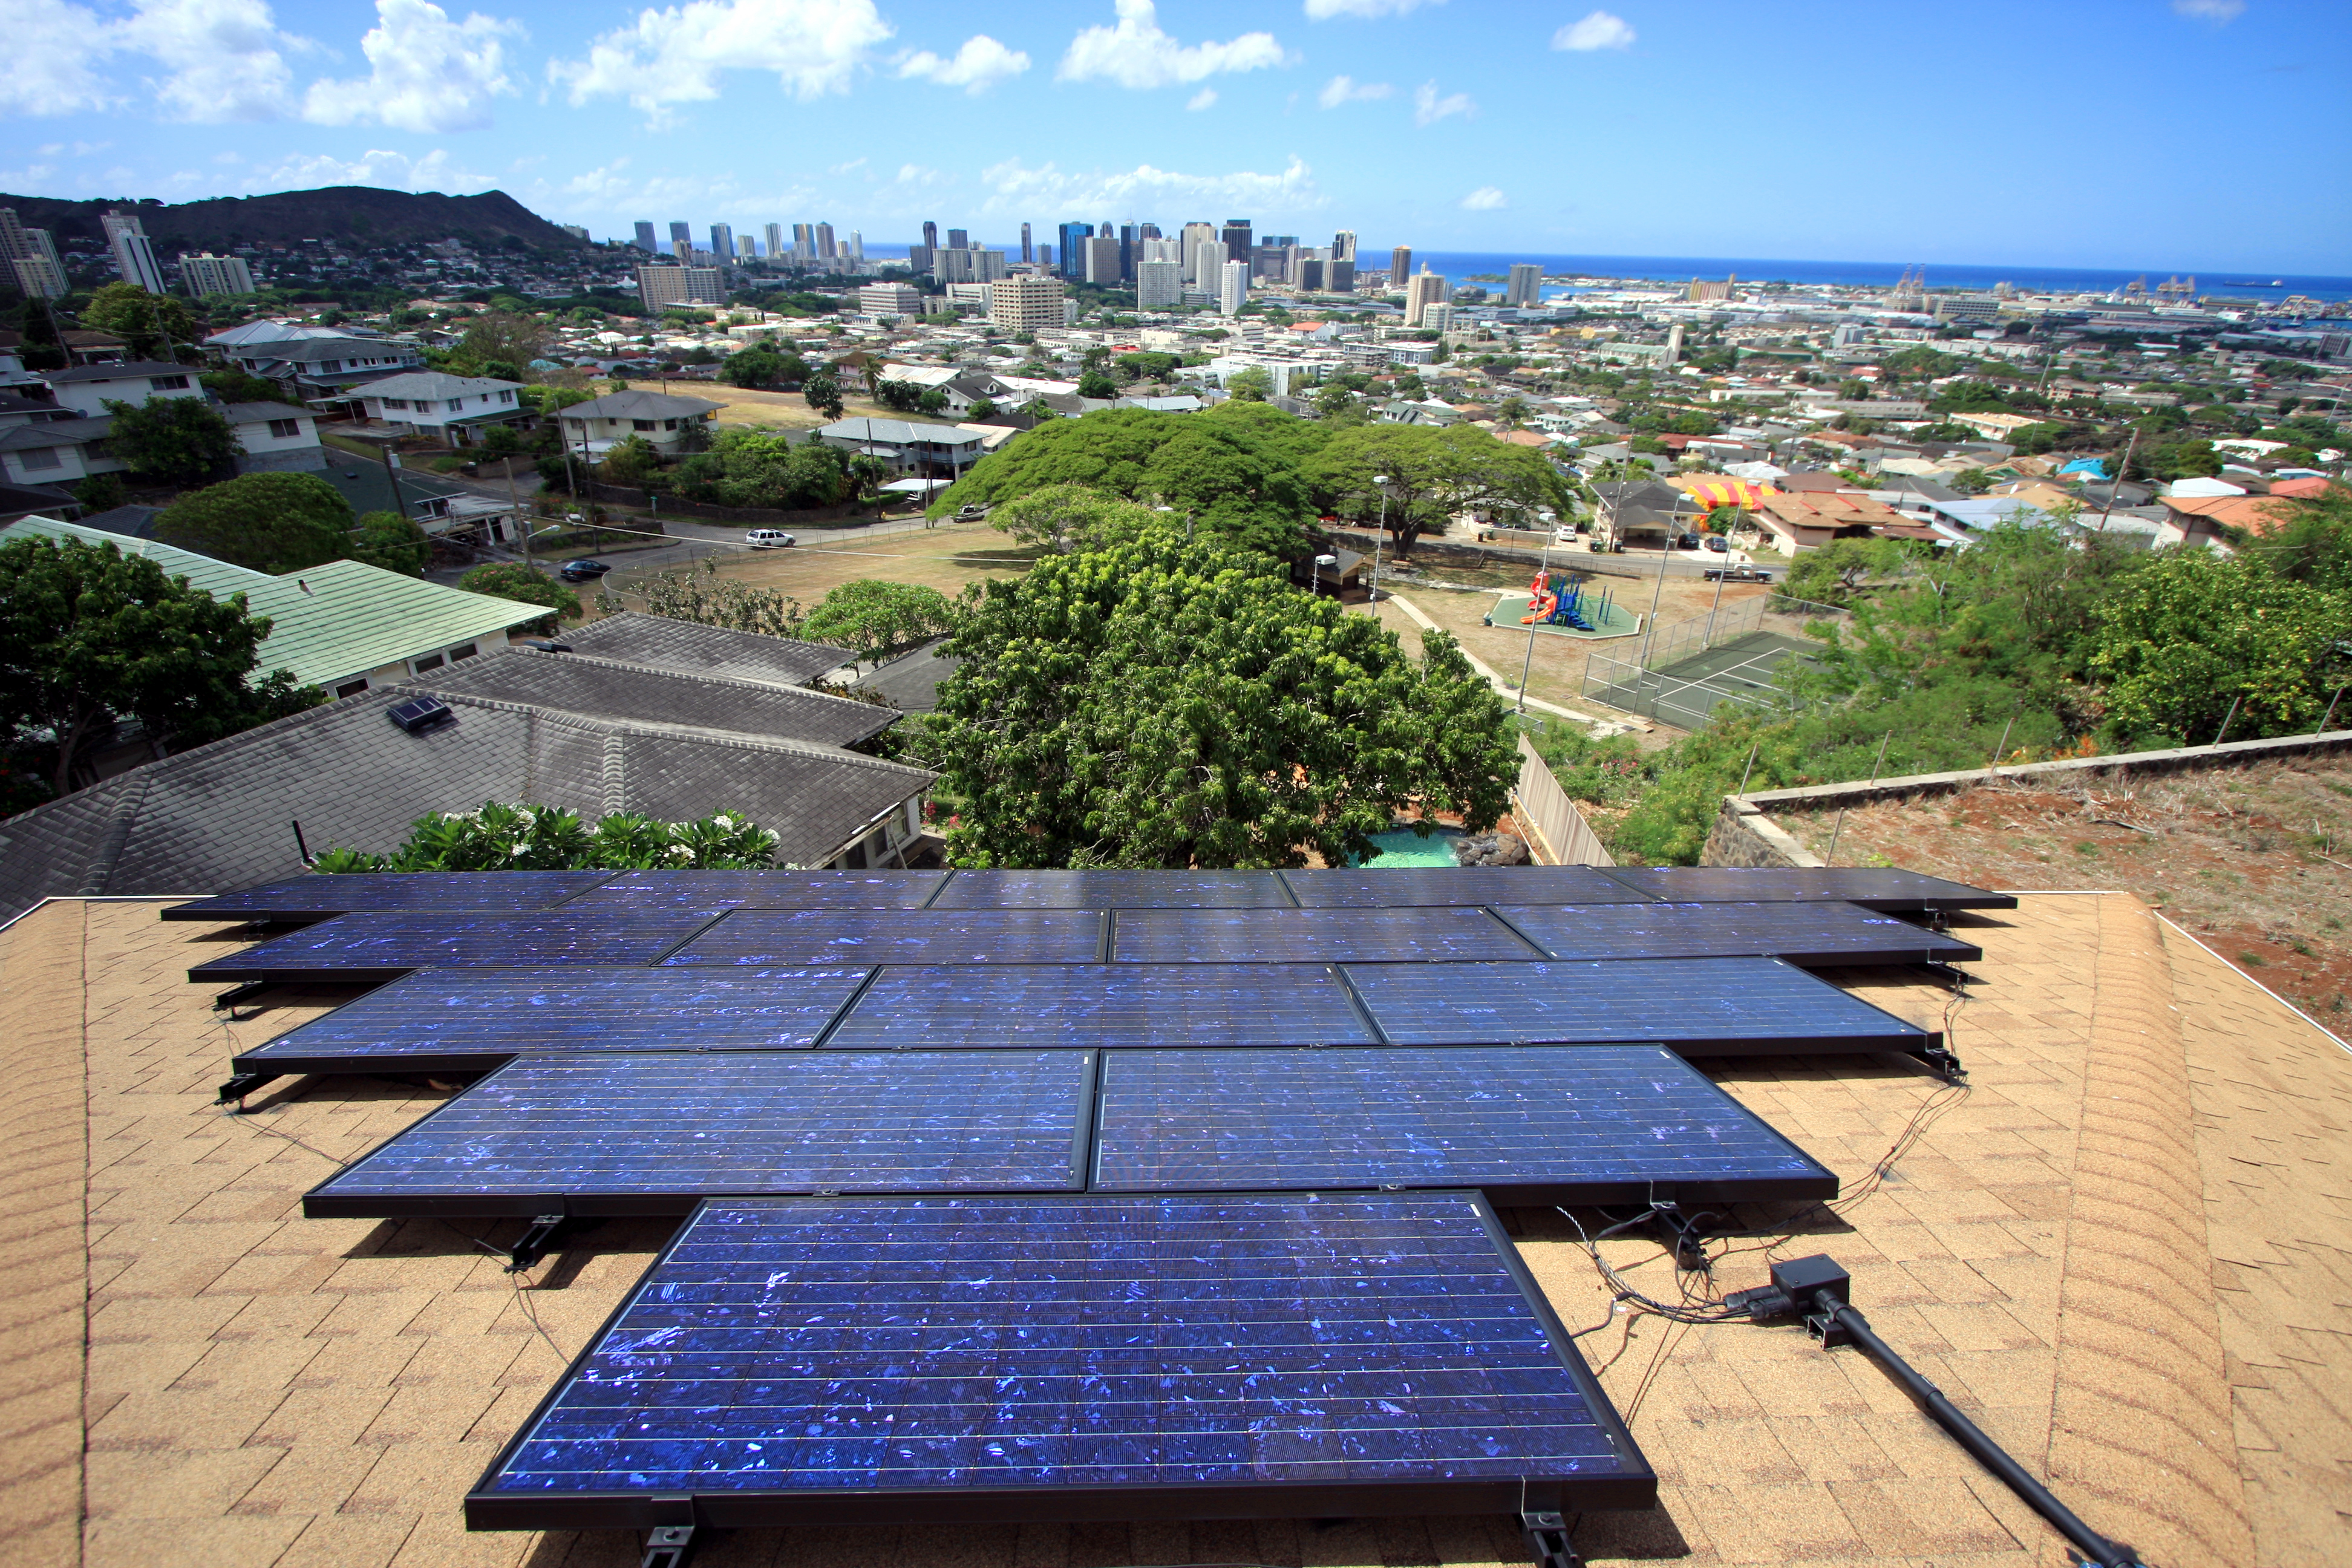 How much is too much? Solar panels on too many rooftops in Honolulu, Hawaii, caused grid safety issues in 2013.